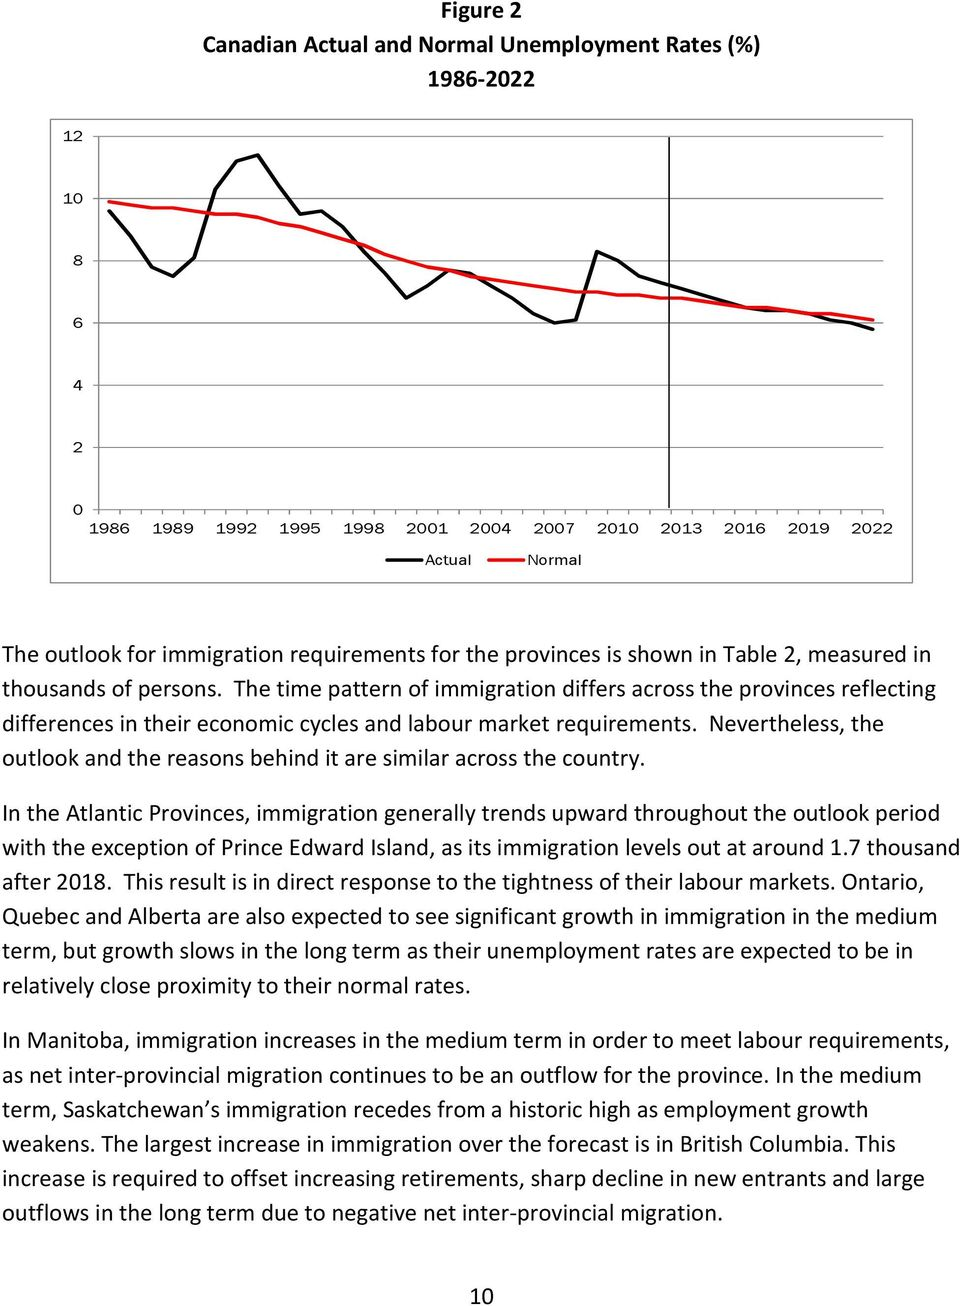 The time pattern of immigration differs across the provinces reflecting differences in their economic cycles and labour market requirements.